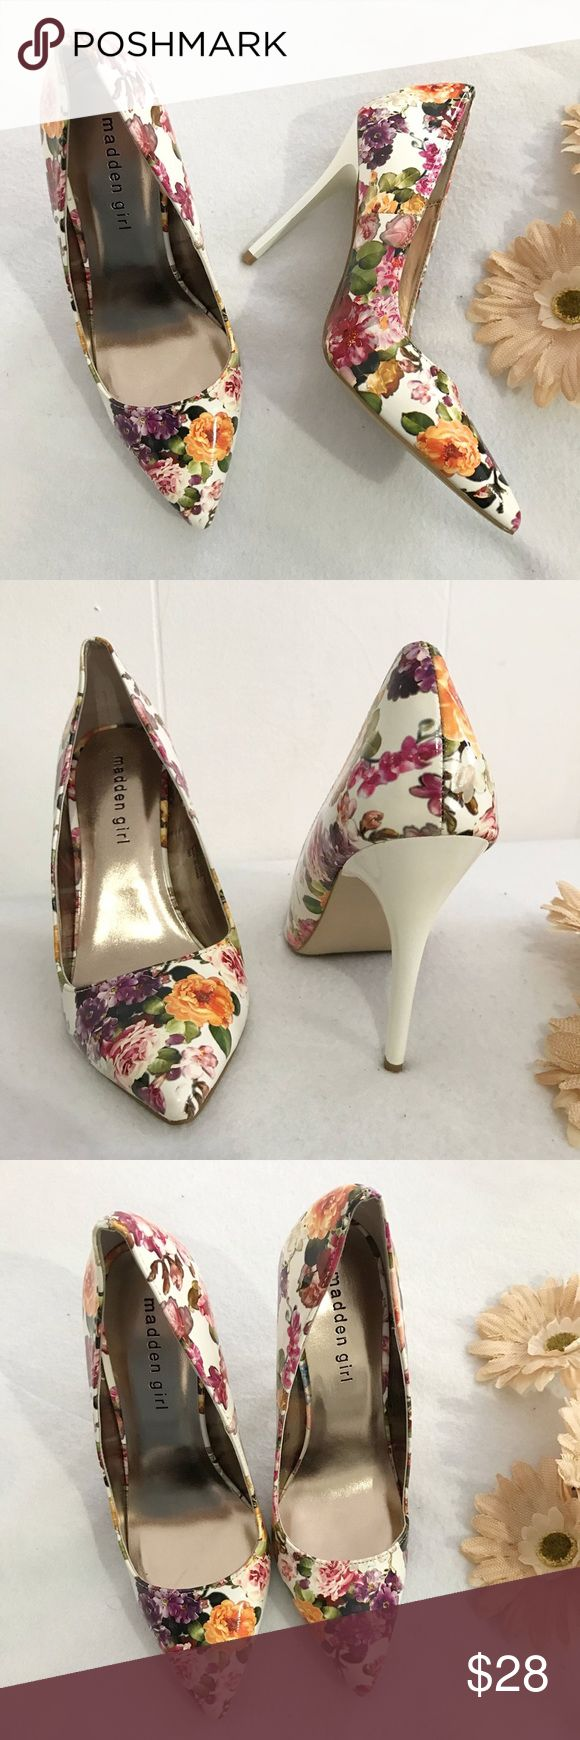 Madden Girl Cute Floral Heels Madden Girl Cute Floral Heels. SIZE: 7. Patent material. 3 inch heels high. Worn only once. No flaws. Like New condition. Madden Girl Shoes Heels